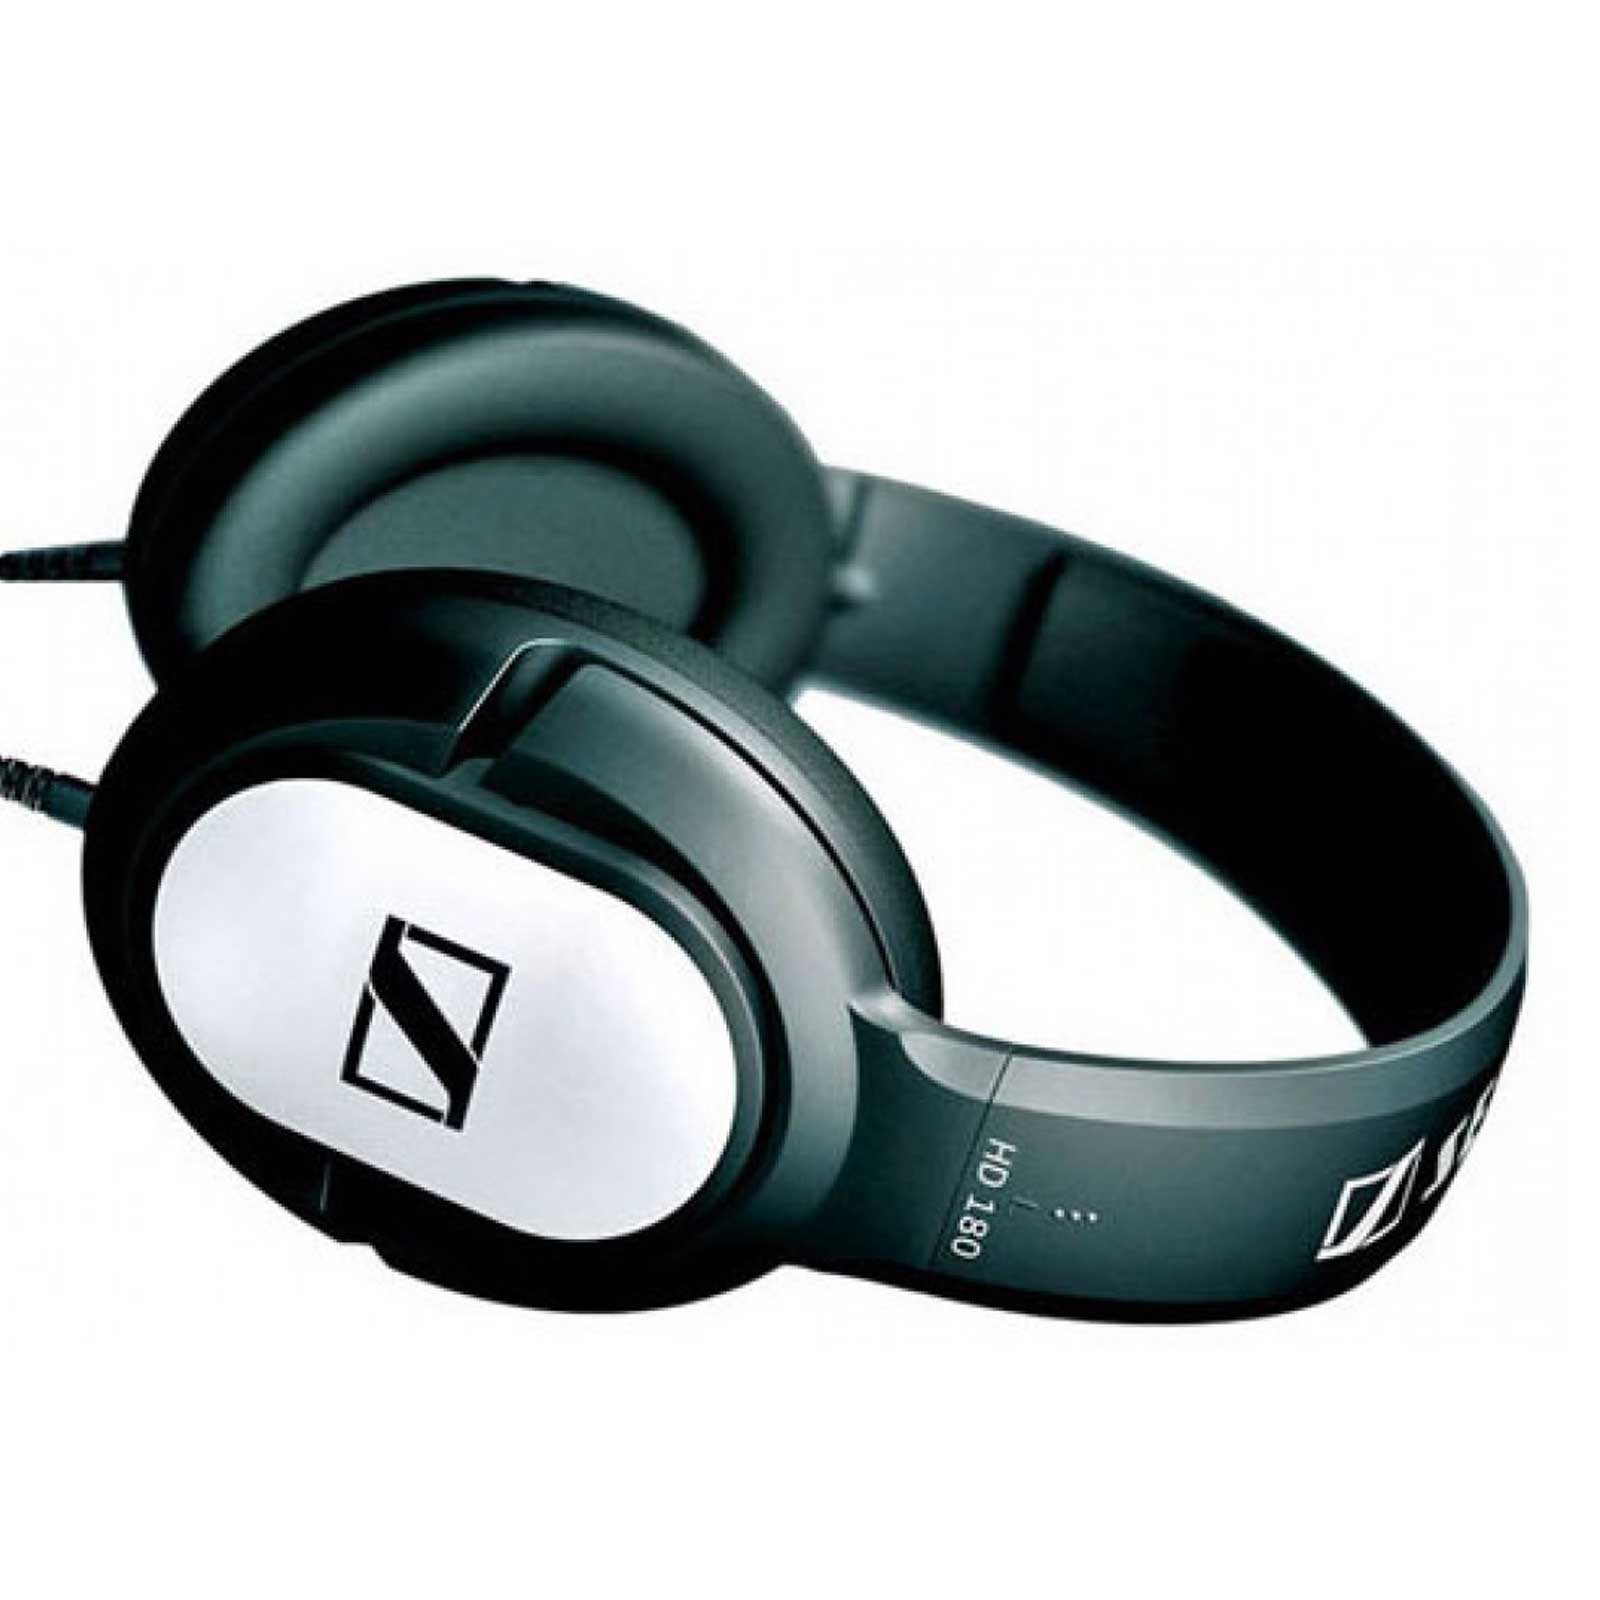 b1939ccab33 SENNHEISER HD 180 OVER-EAR HEADPHONE Reviews, SENNHEISER HD 180 OVER ...